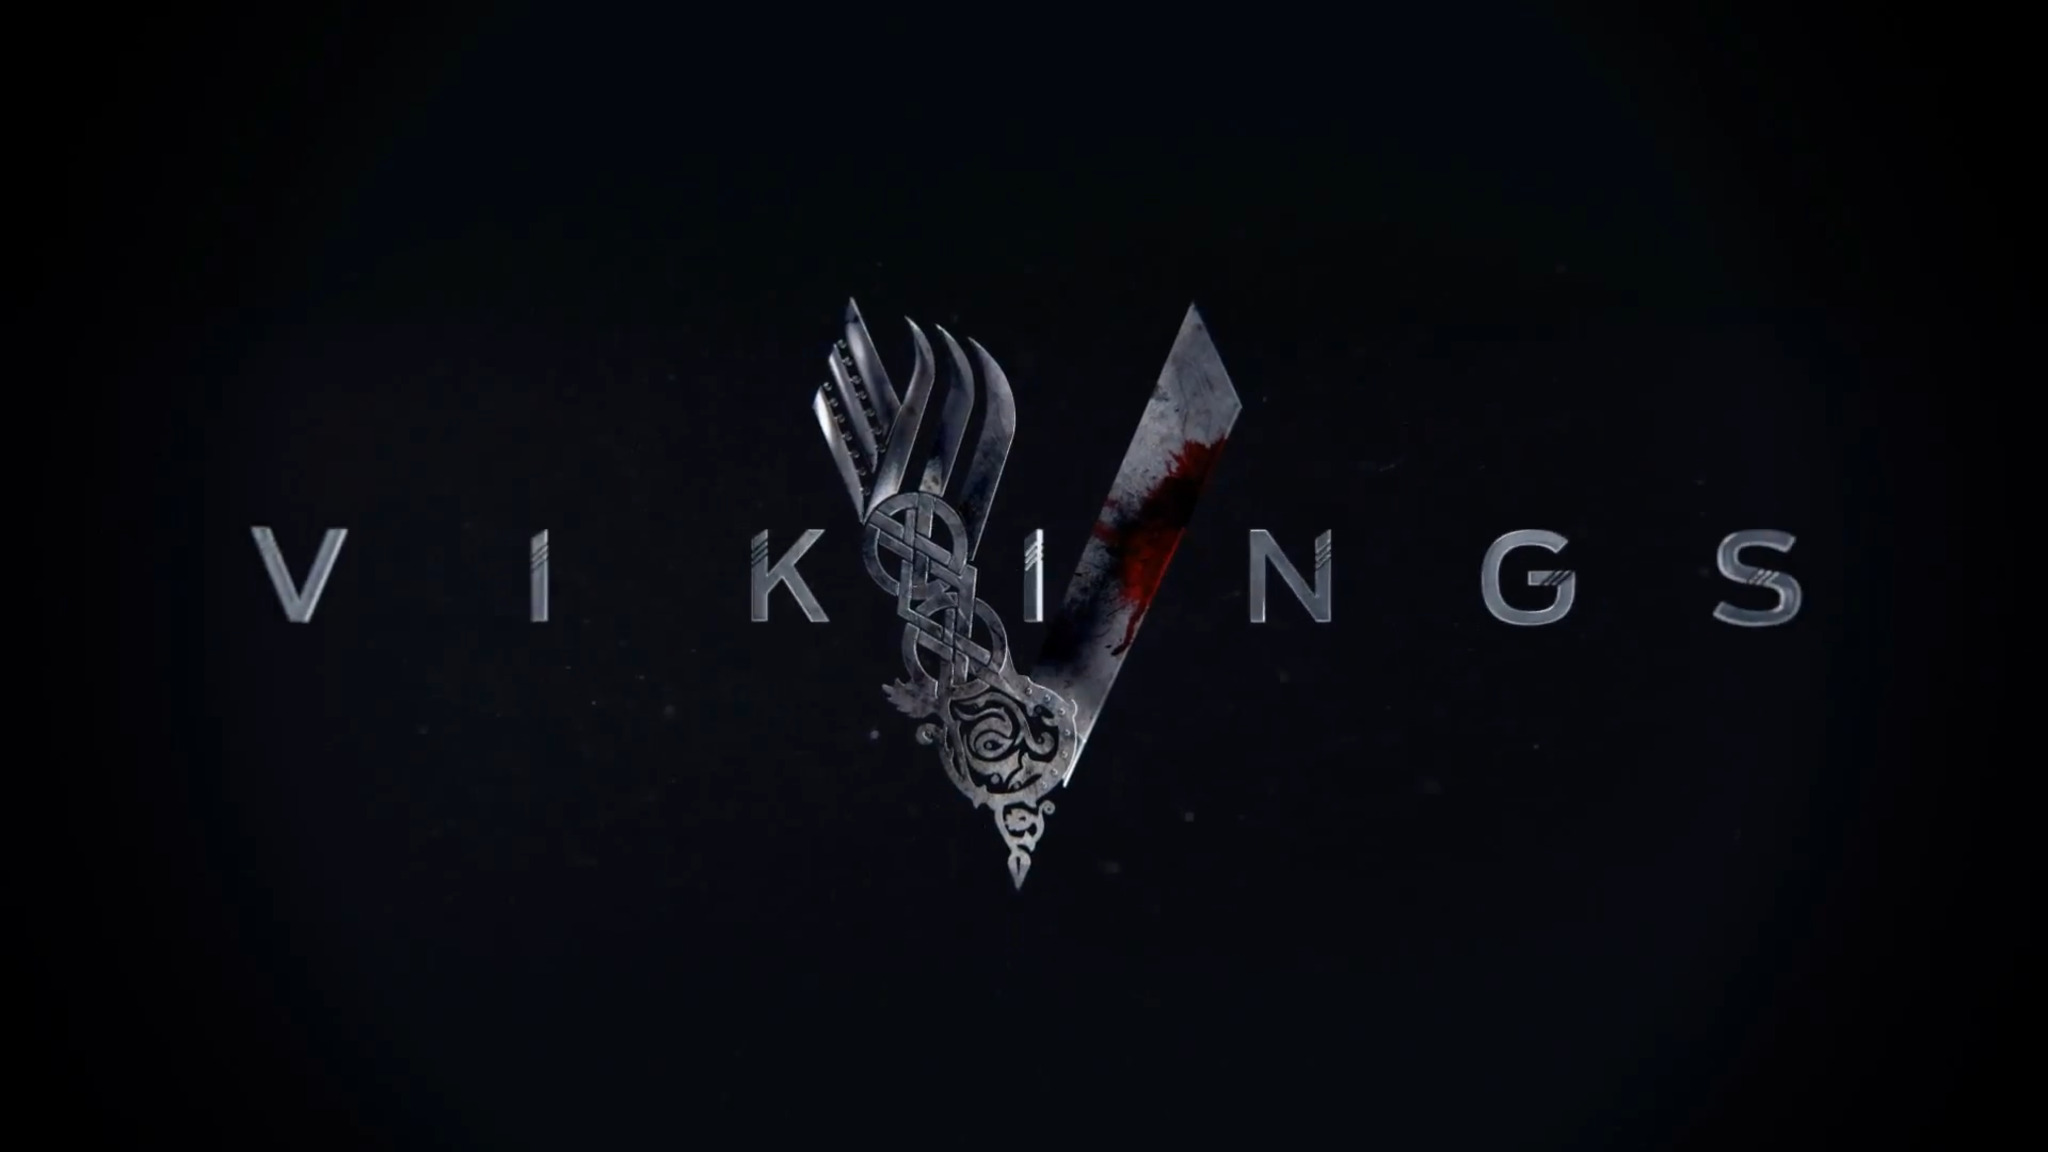 Black Cars Wallpapers For Android Mobile Hd 2048x1152 Vikings Logo 2048x1152 Resolution Hd 4k